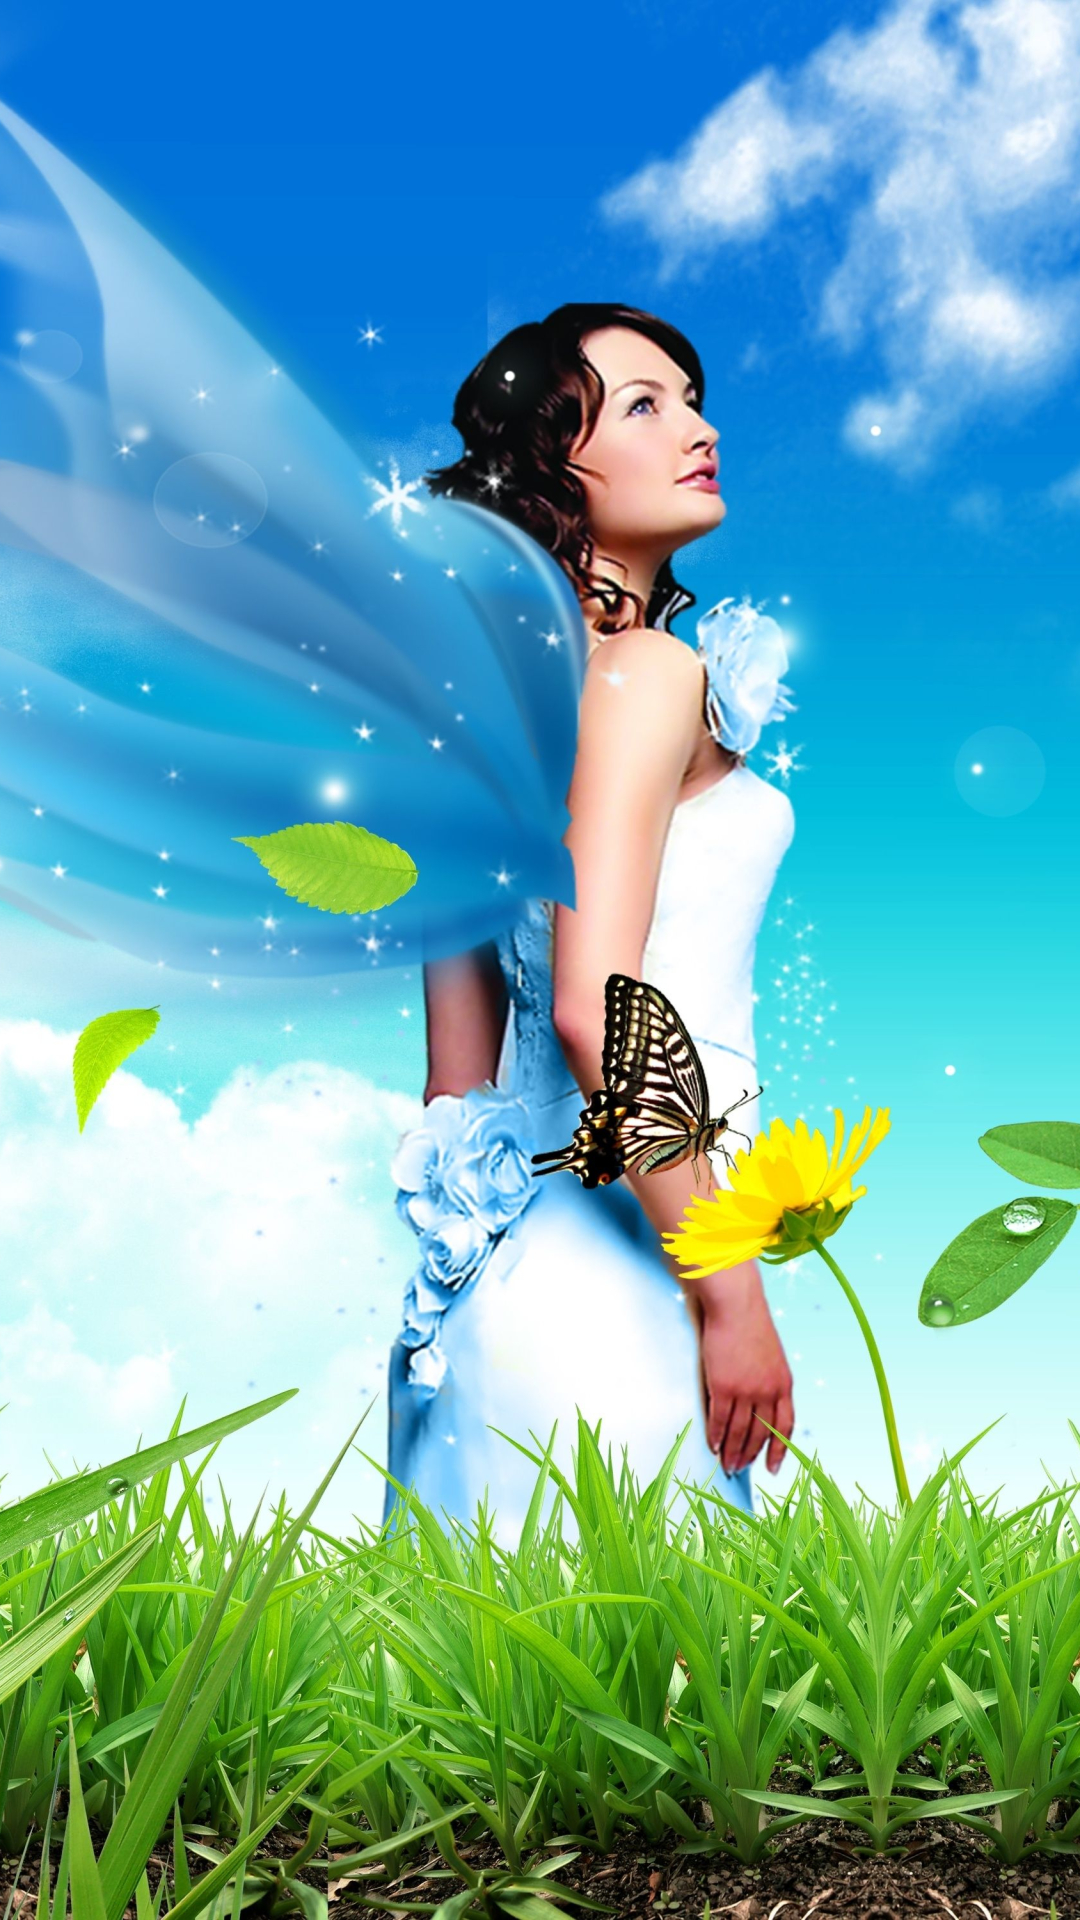 Fantasyfairy 1080x1920 Wallpaper Id 701874 Mobile Abyss